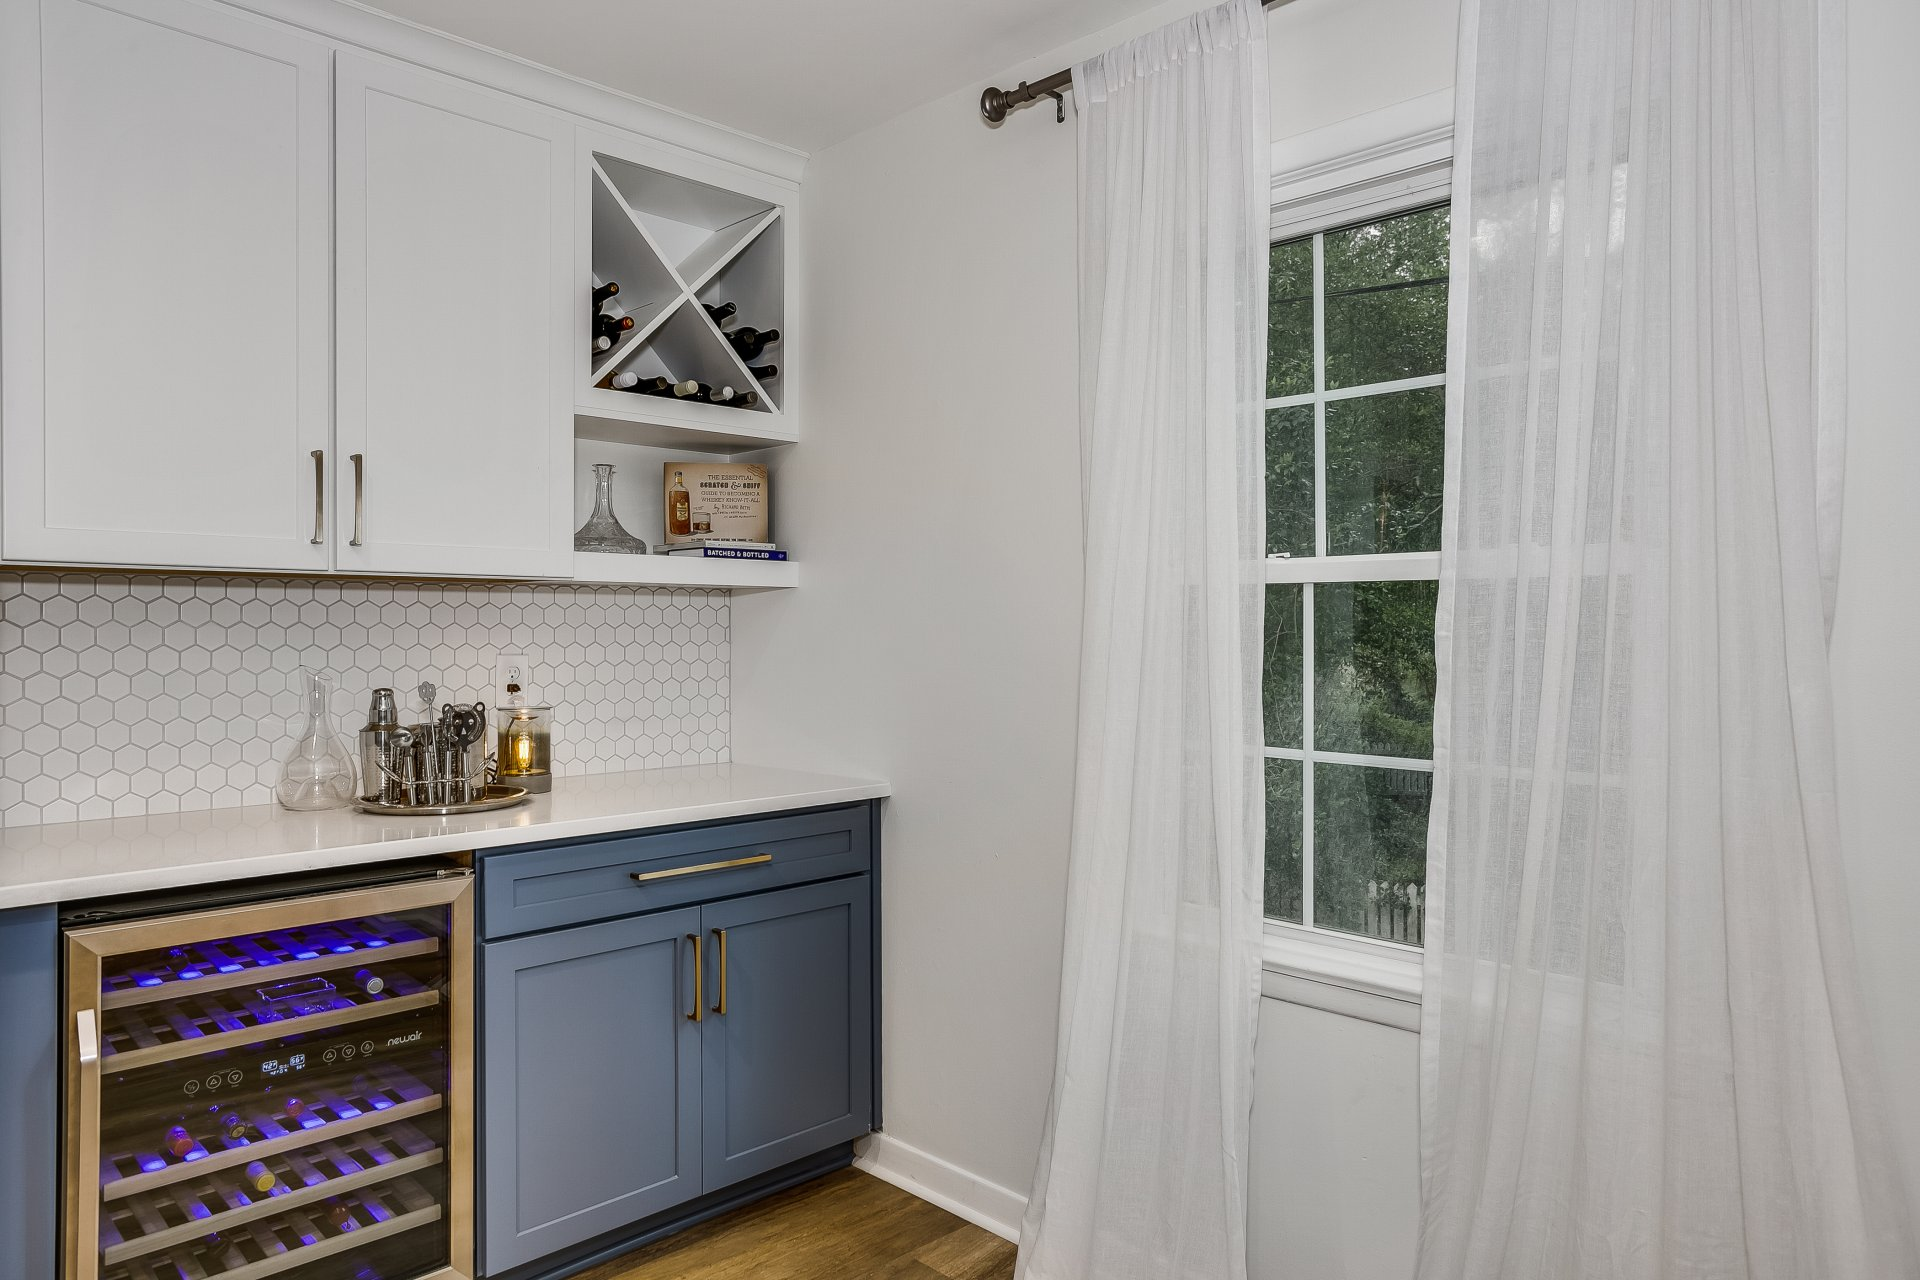 Storage for white and red wine